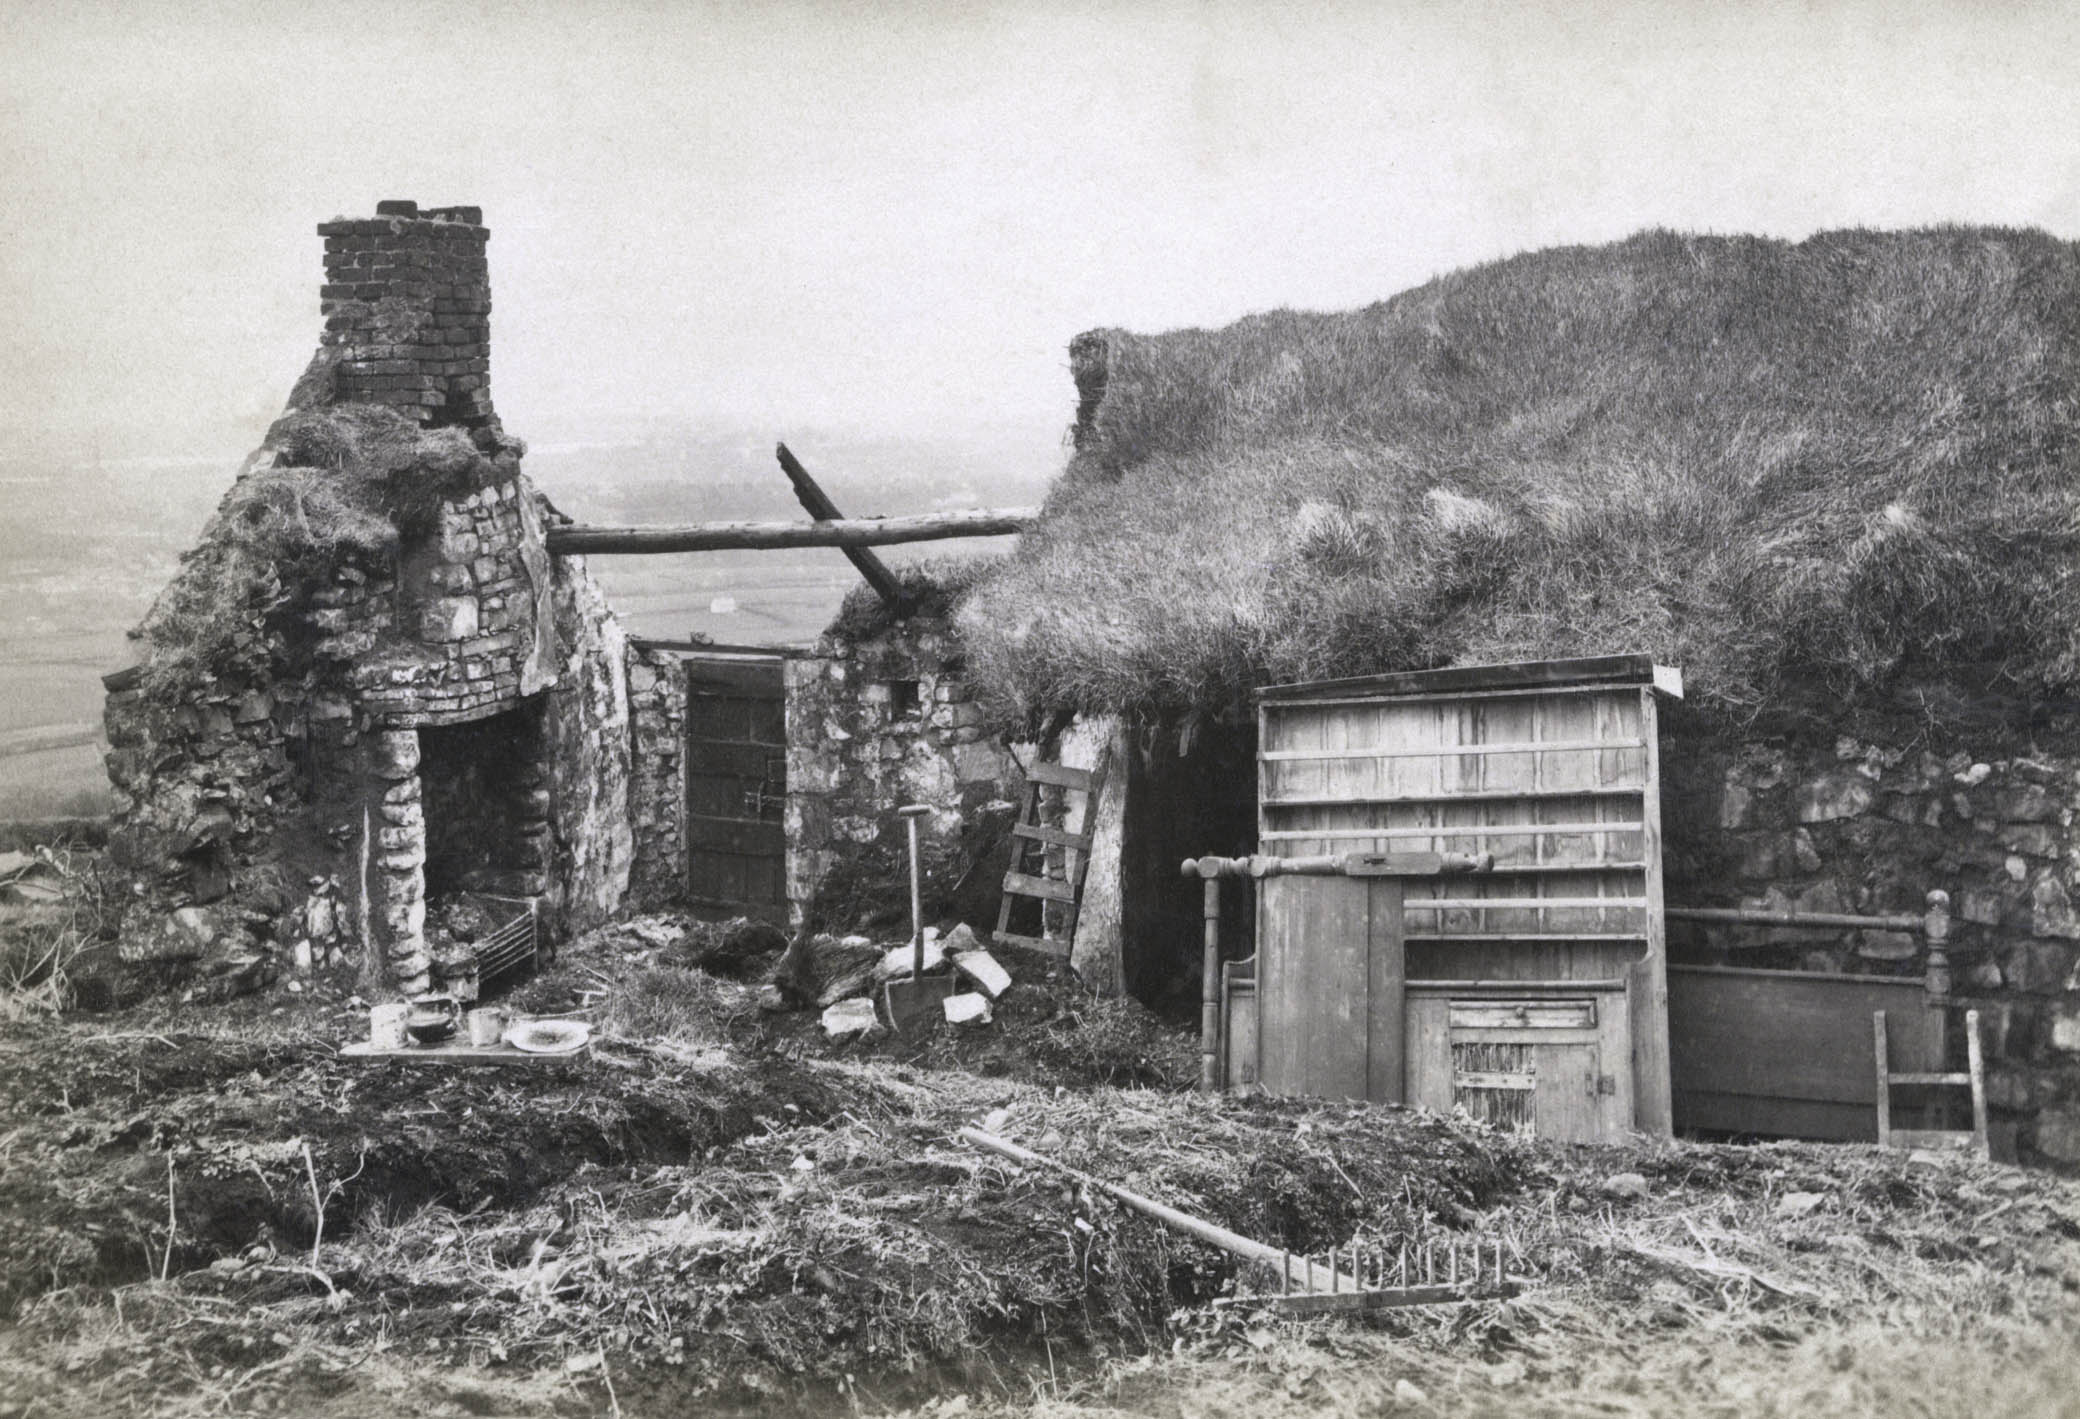 The ruins of a house following an eviction, c. 1888.